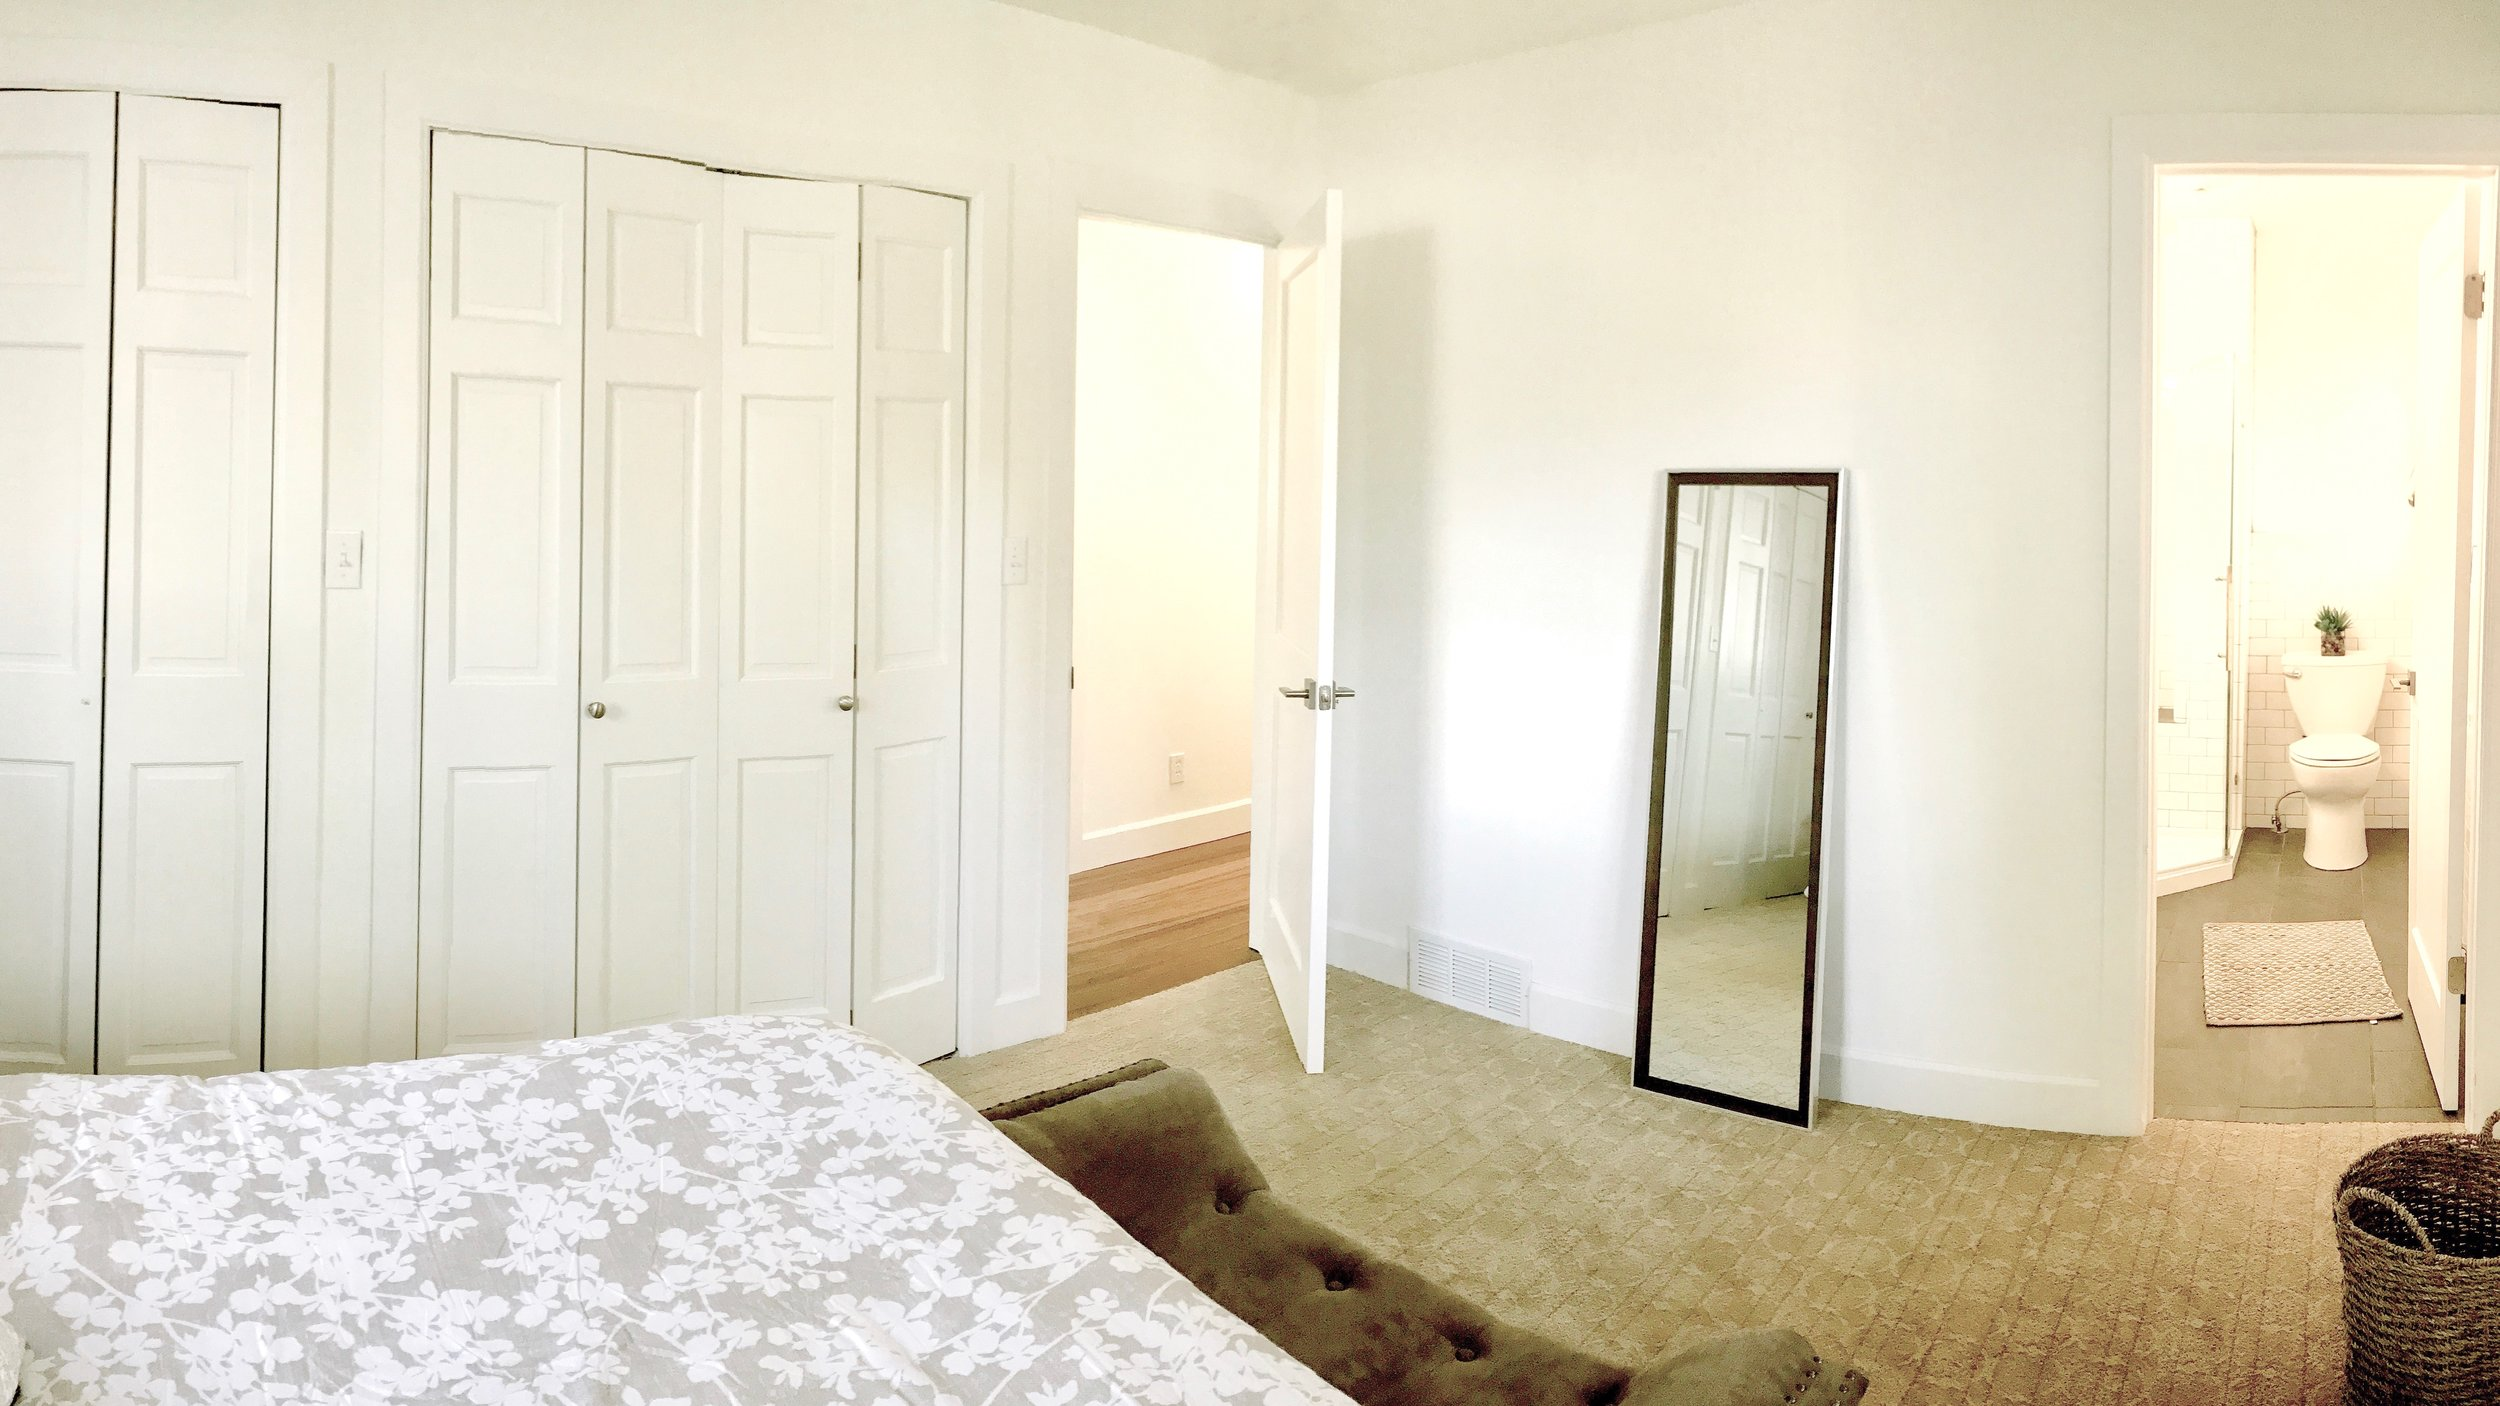 We reconfigured walls to maximize space, adding a master bathroom and 11 feet of hanging space in the master closet.